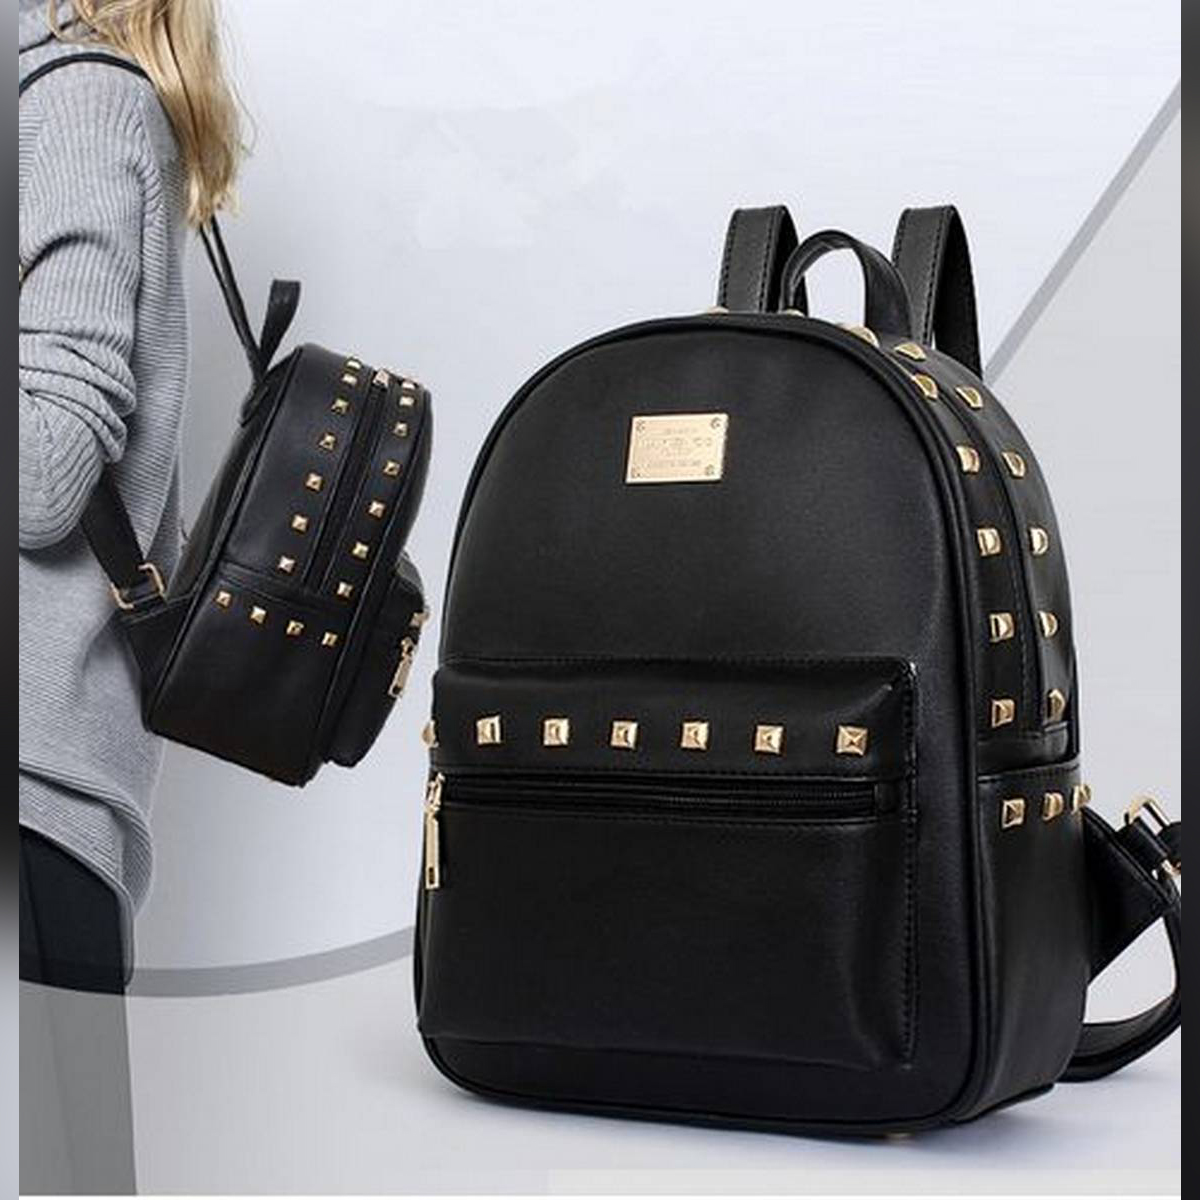 Leather Fancy and Stylish shoulder backpack, bags for school and college girls